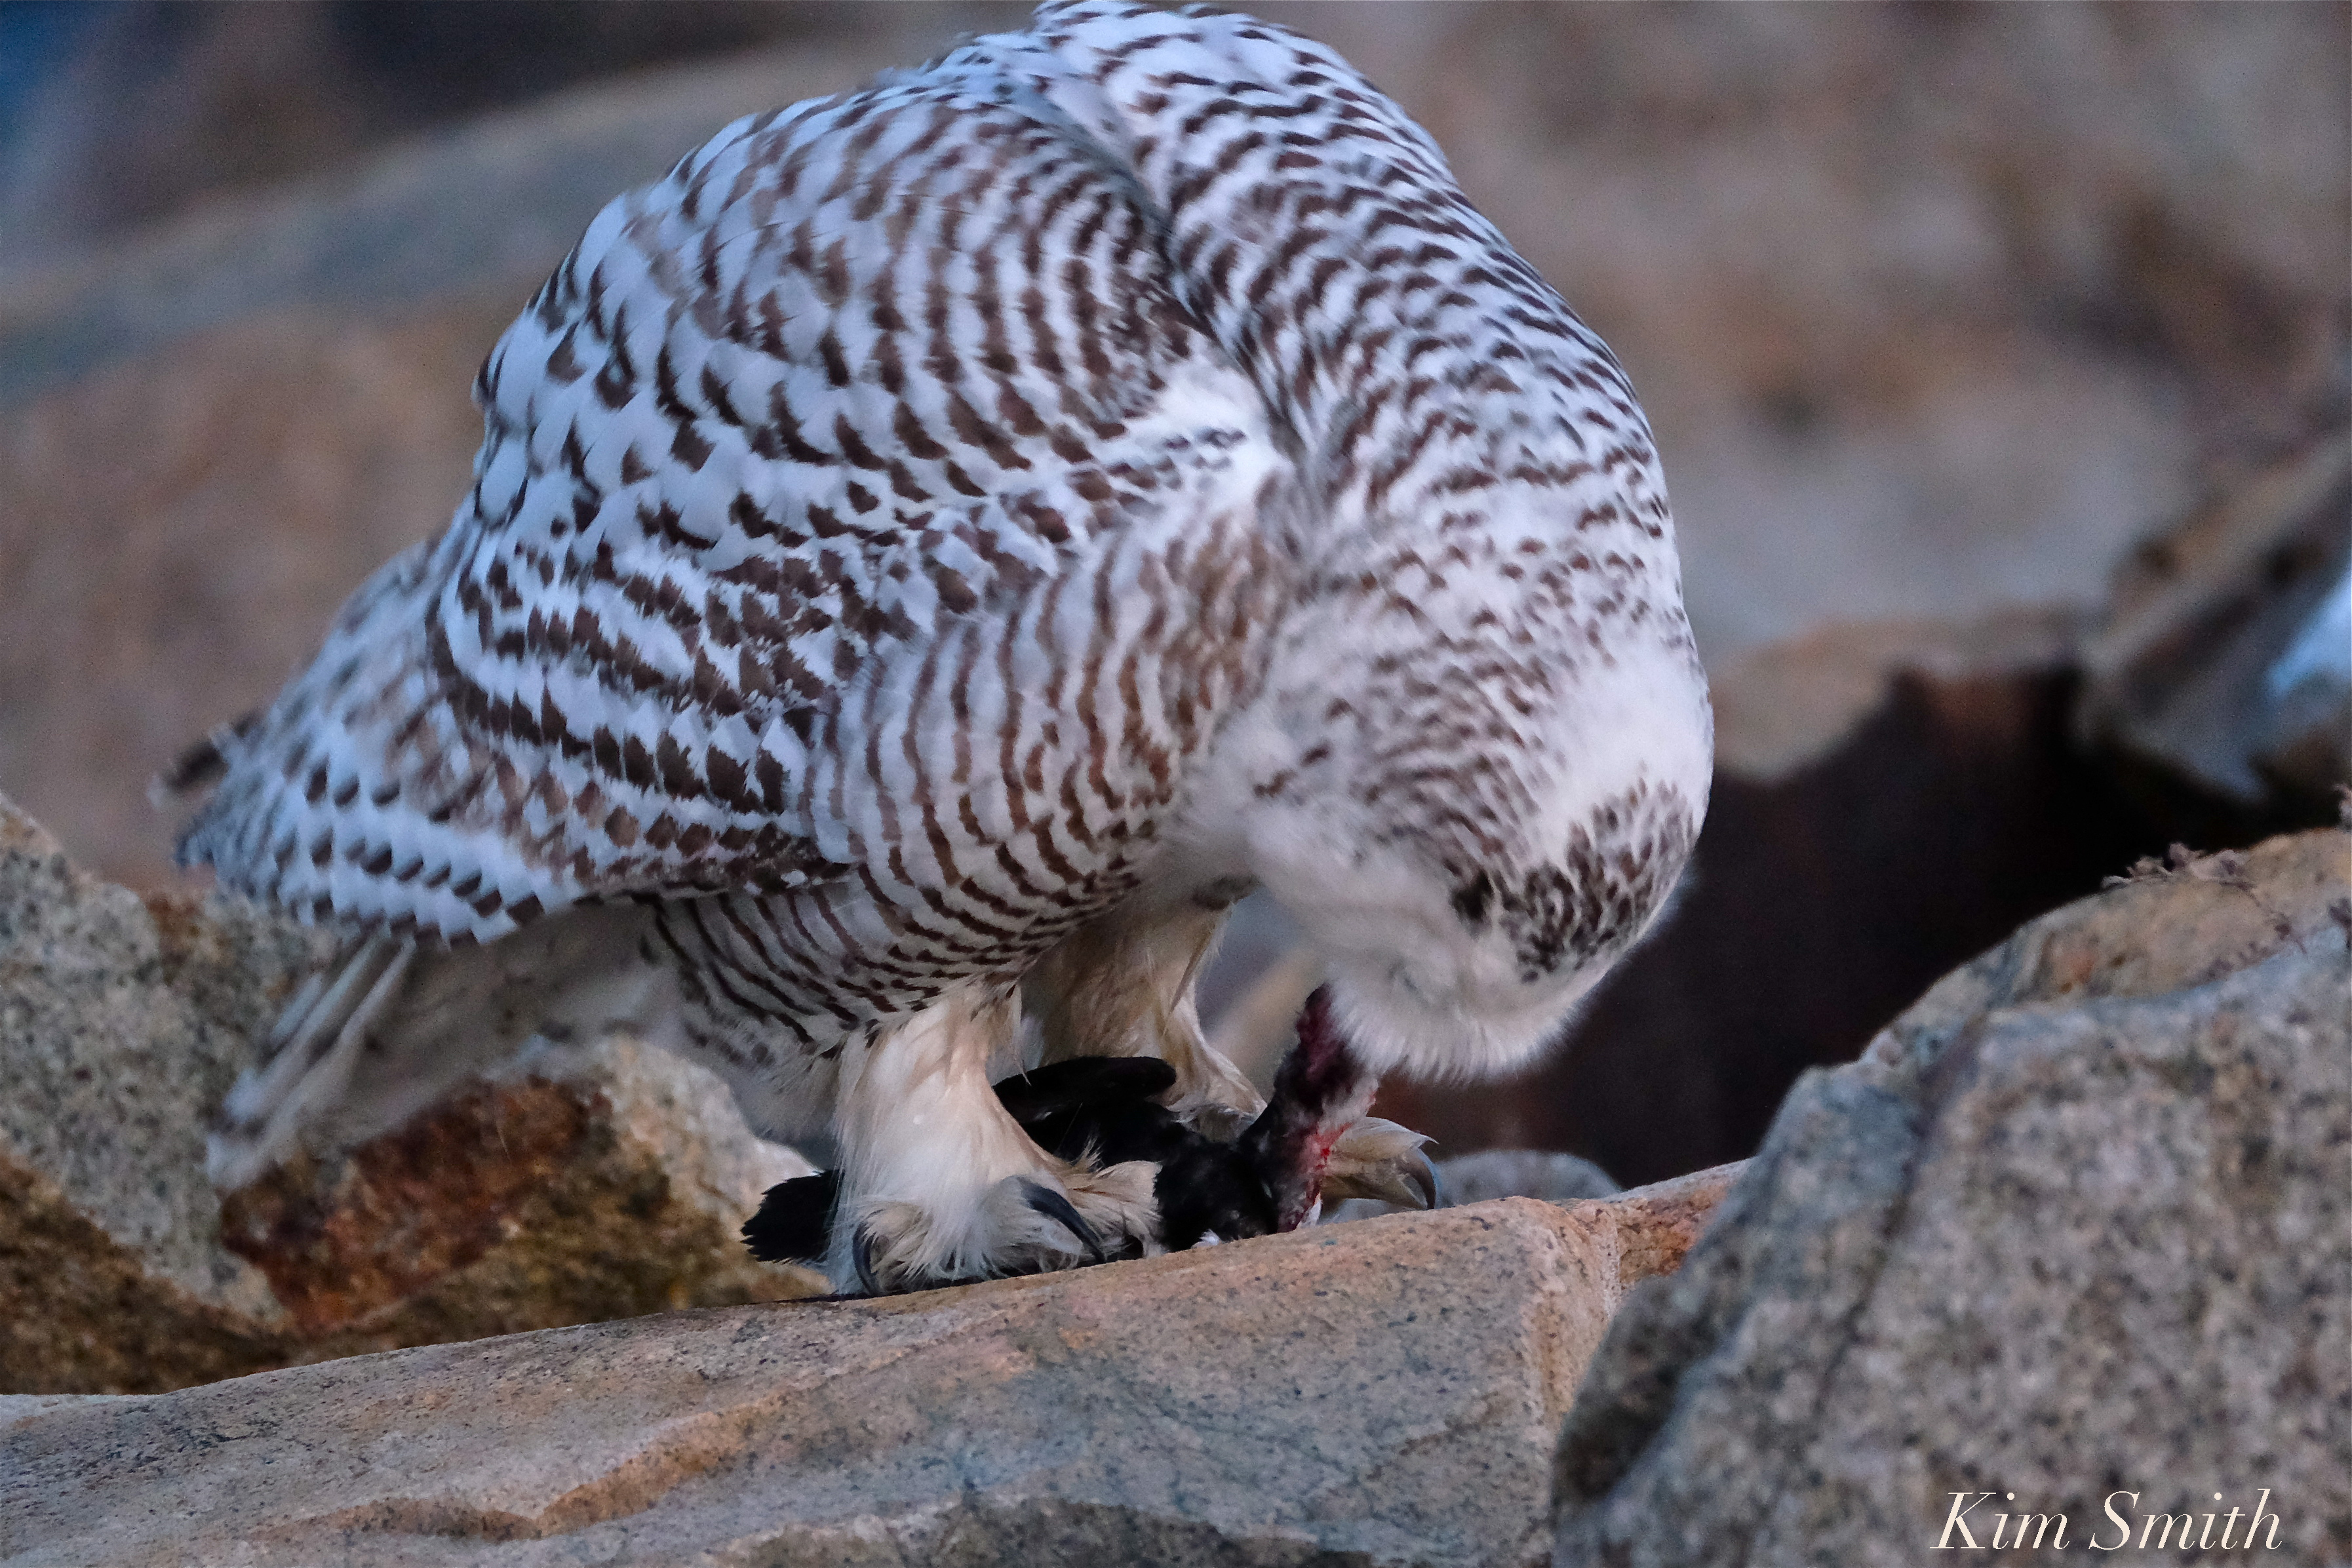 Female snowy owl kim smith designs or rat and too short for a vole but perhaps not small mammal caretaker erin whitmore wrote with her suggestion what do you think hedwig is eating biocorpaavc Choice Image